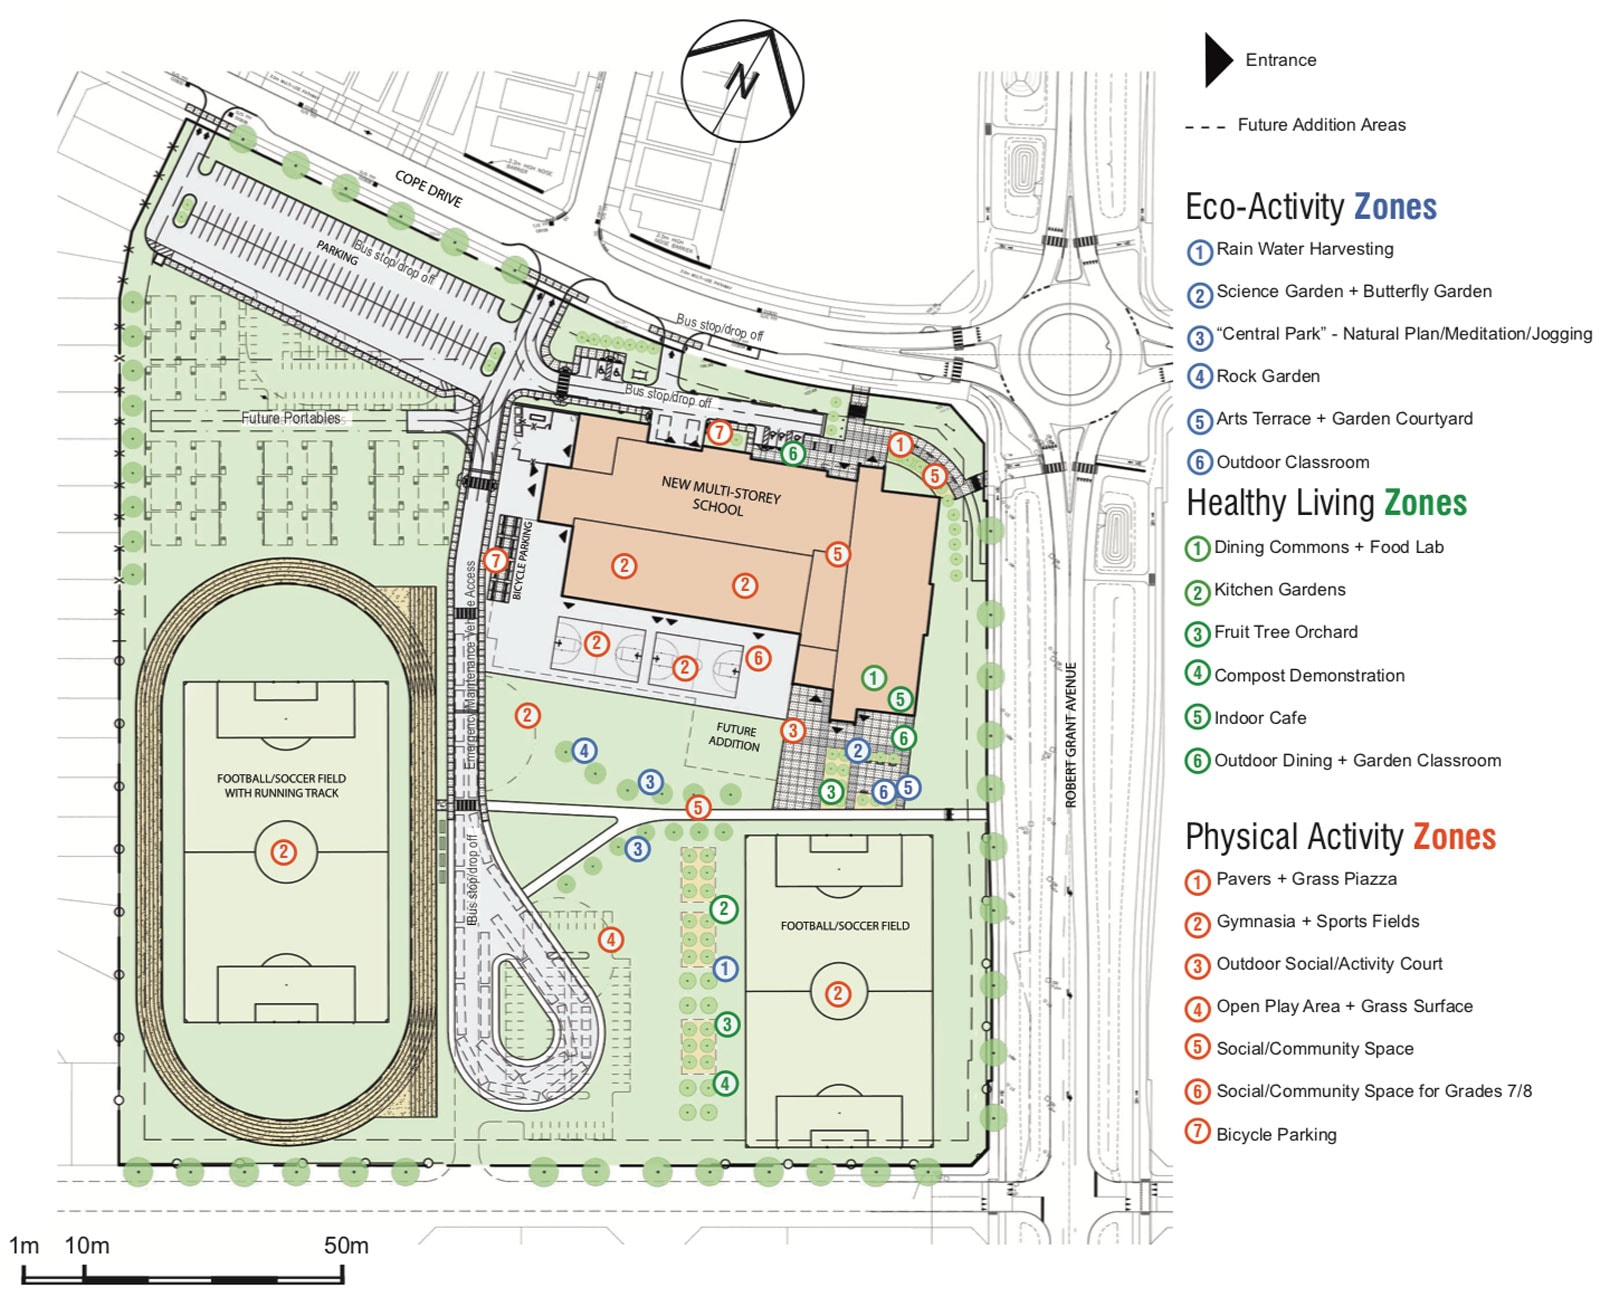 Stittsville public high school site plan map